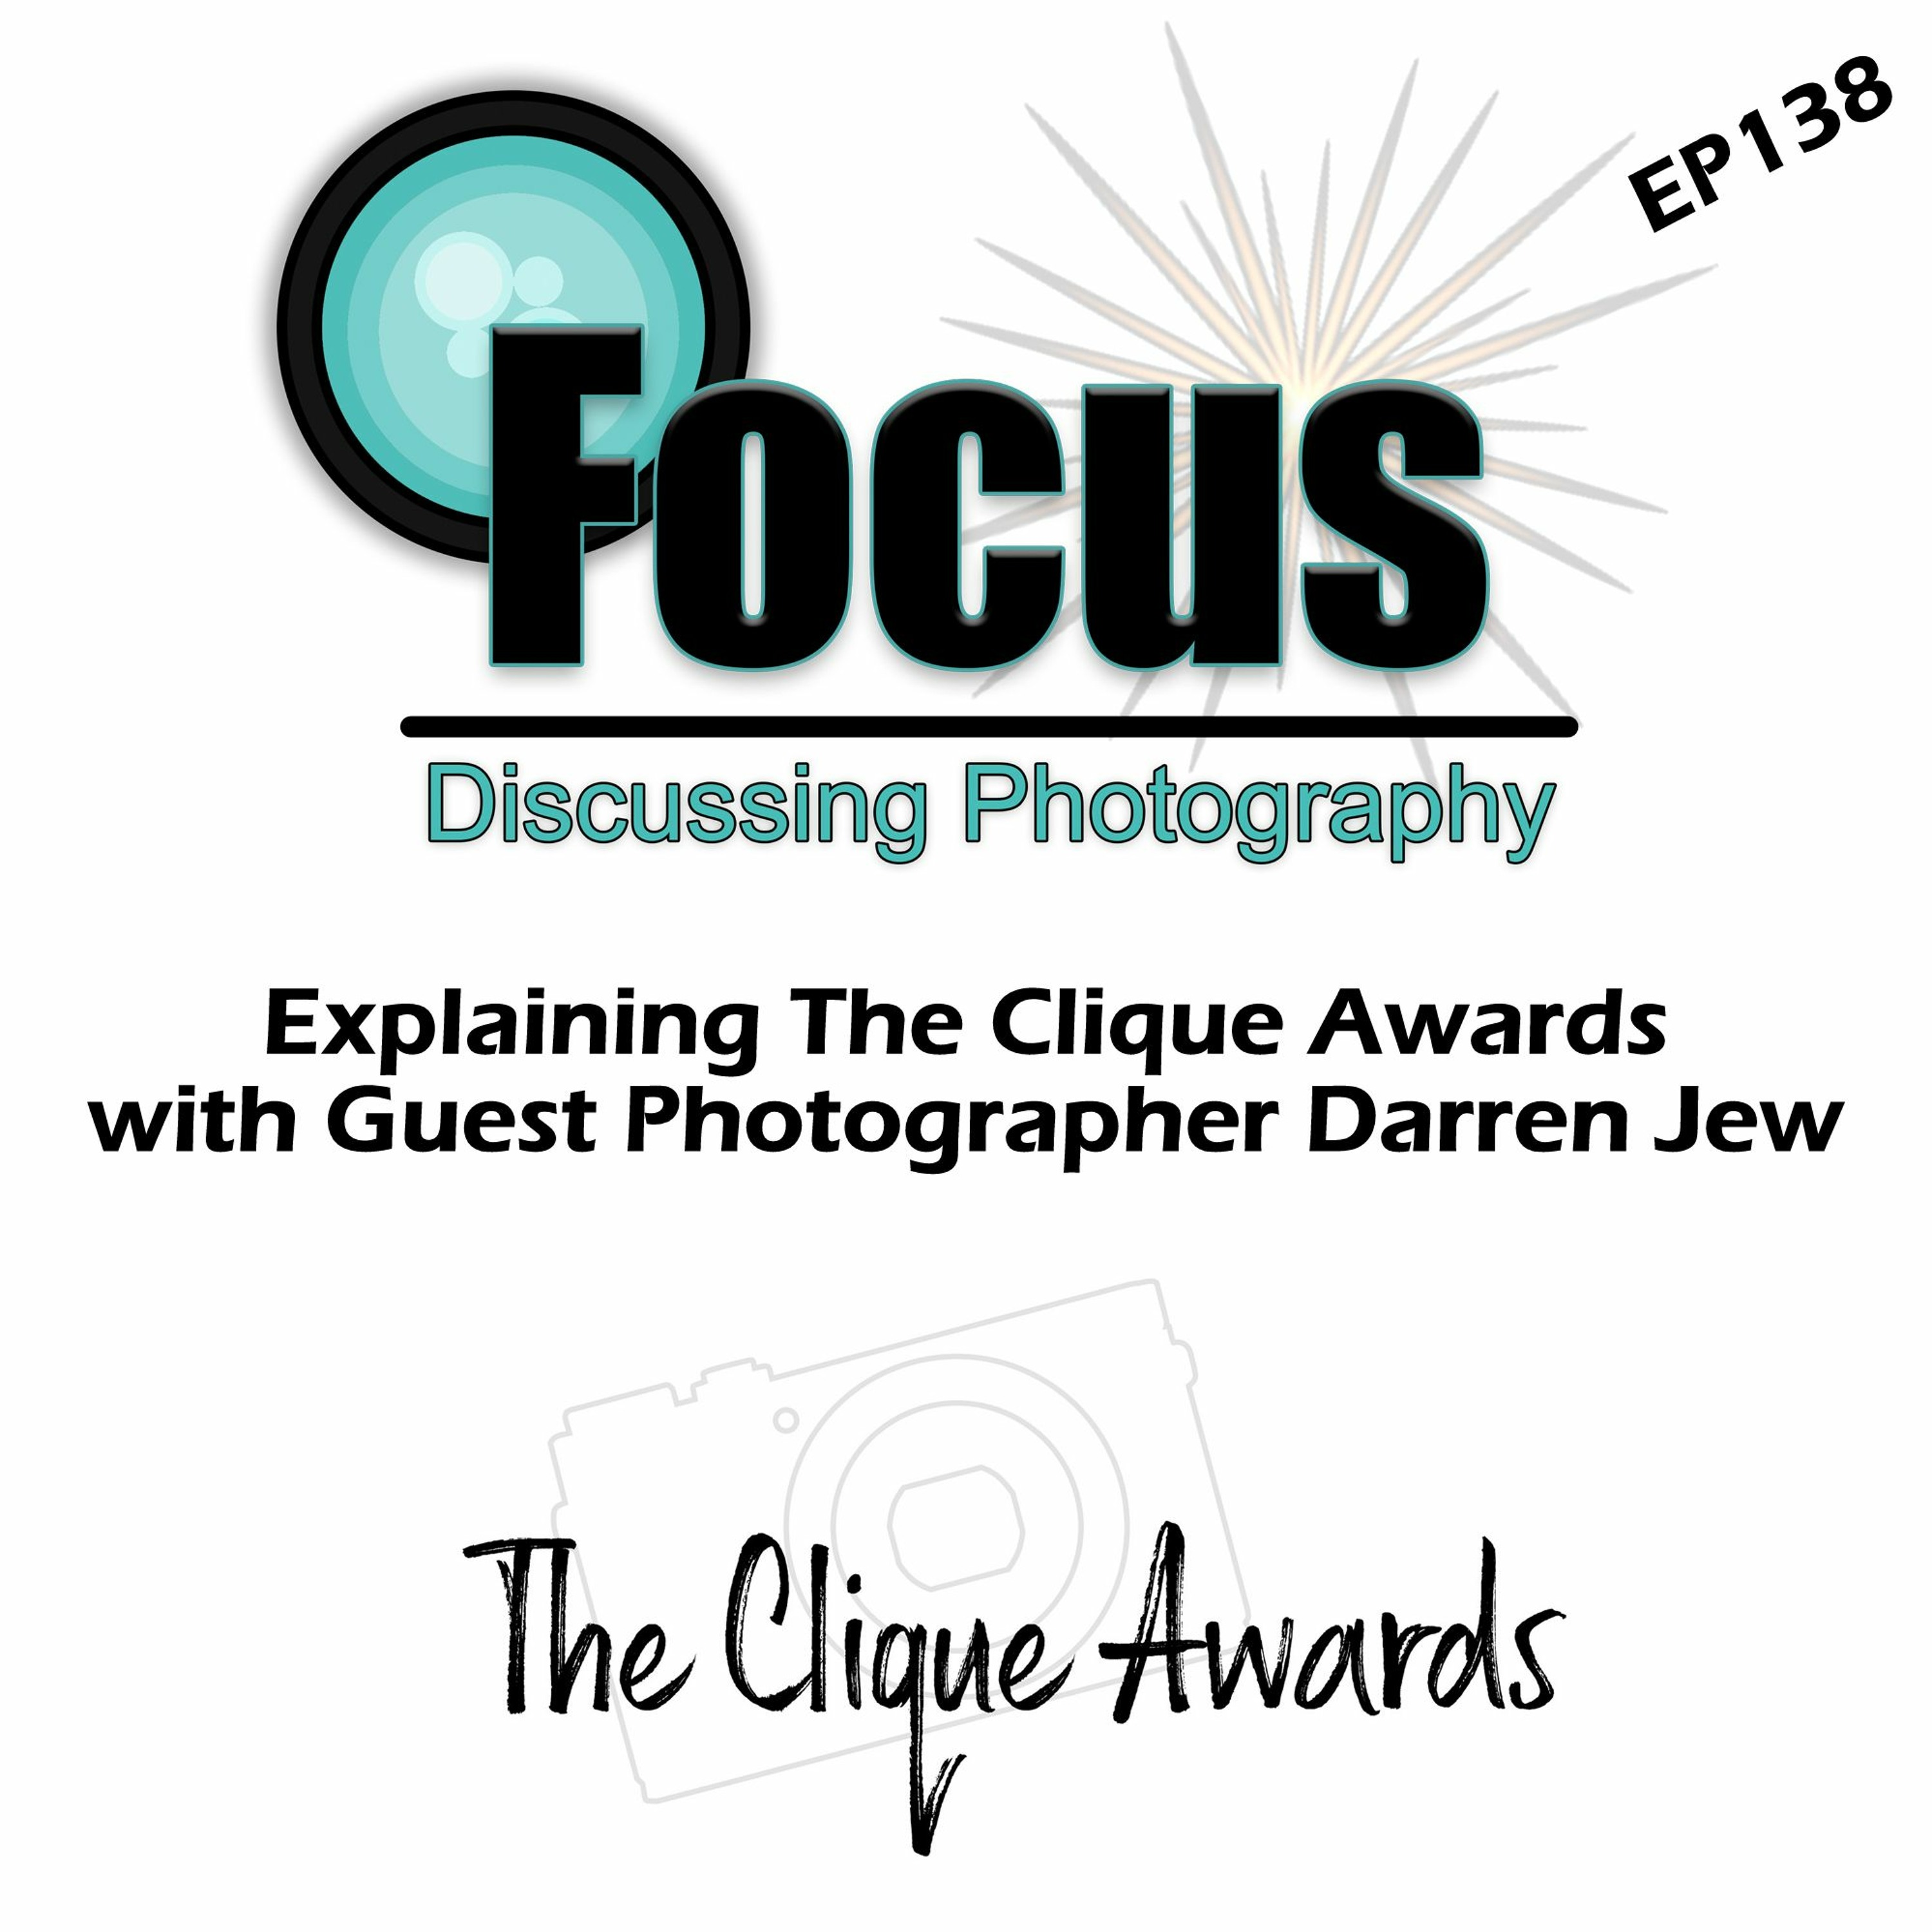 Focus: Photography Podcast with Stephen Finkel and Darren Jew Talking About The Clique Awards EP138